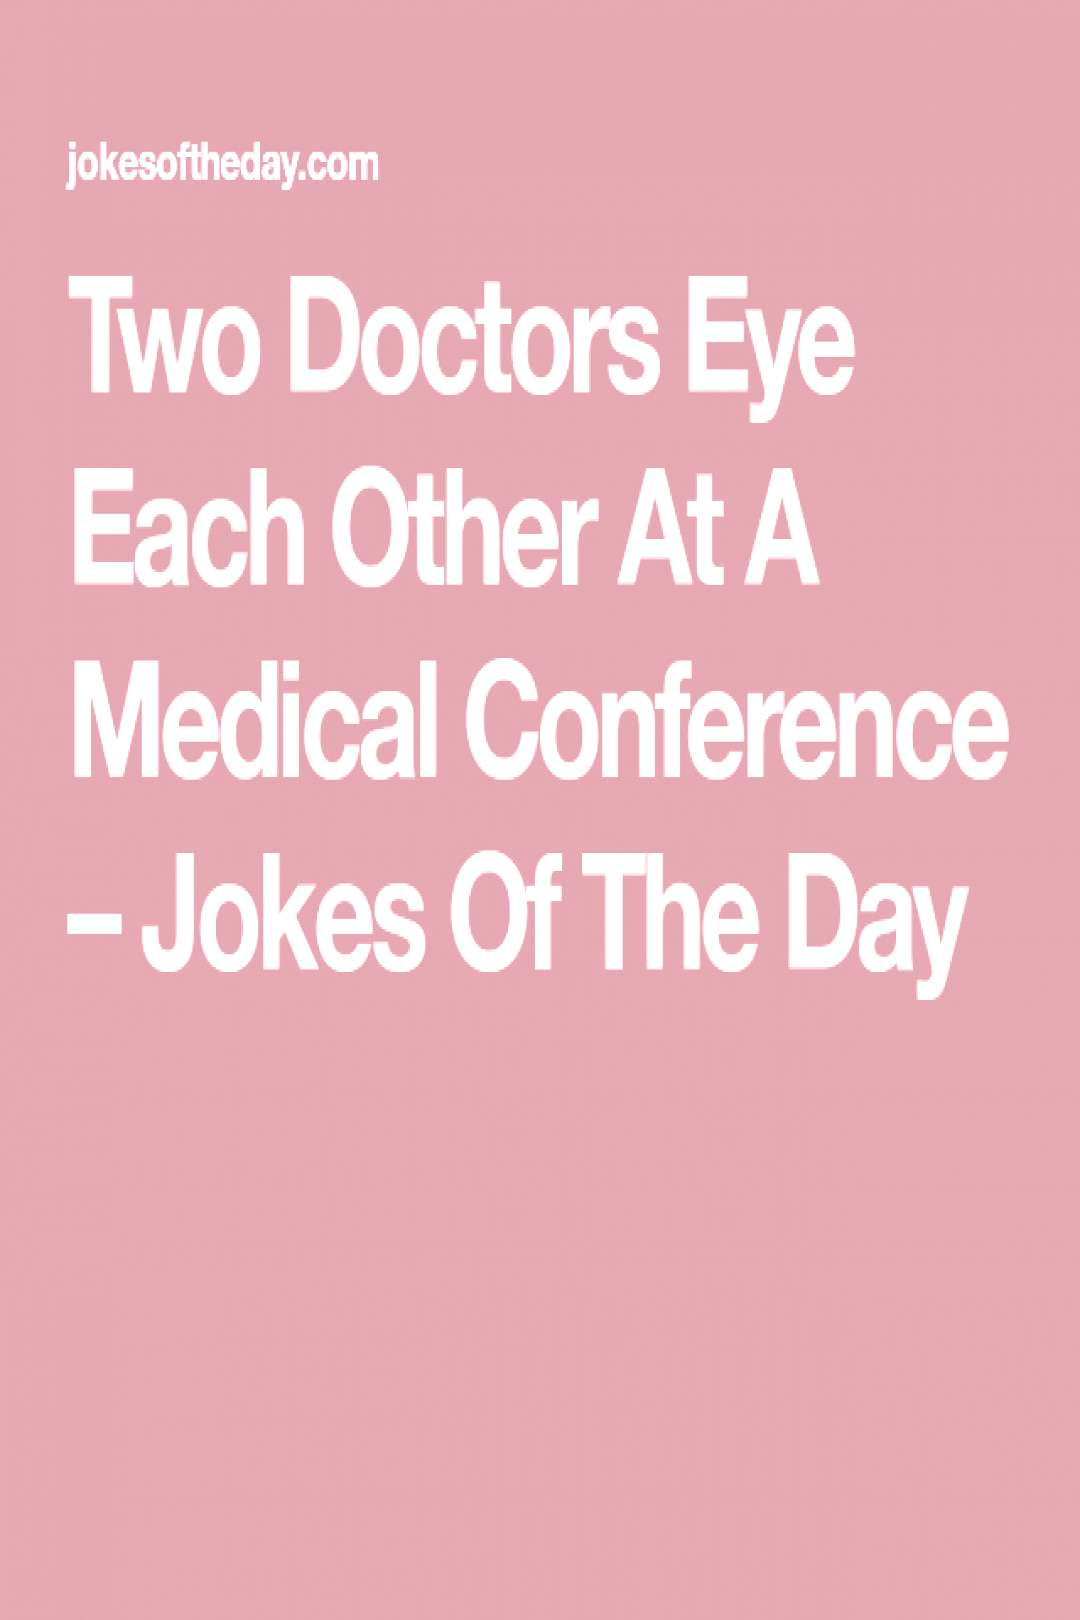 Two Doctors Eye Each Other At A Medical Conference Two Doctors Eye Each Other At A Medical Conferen